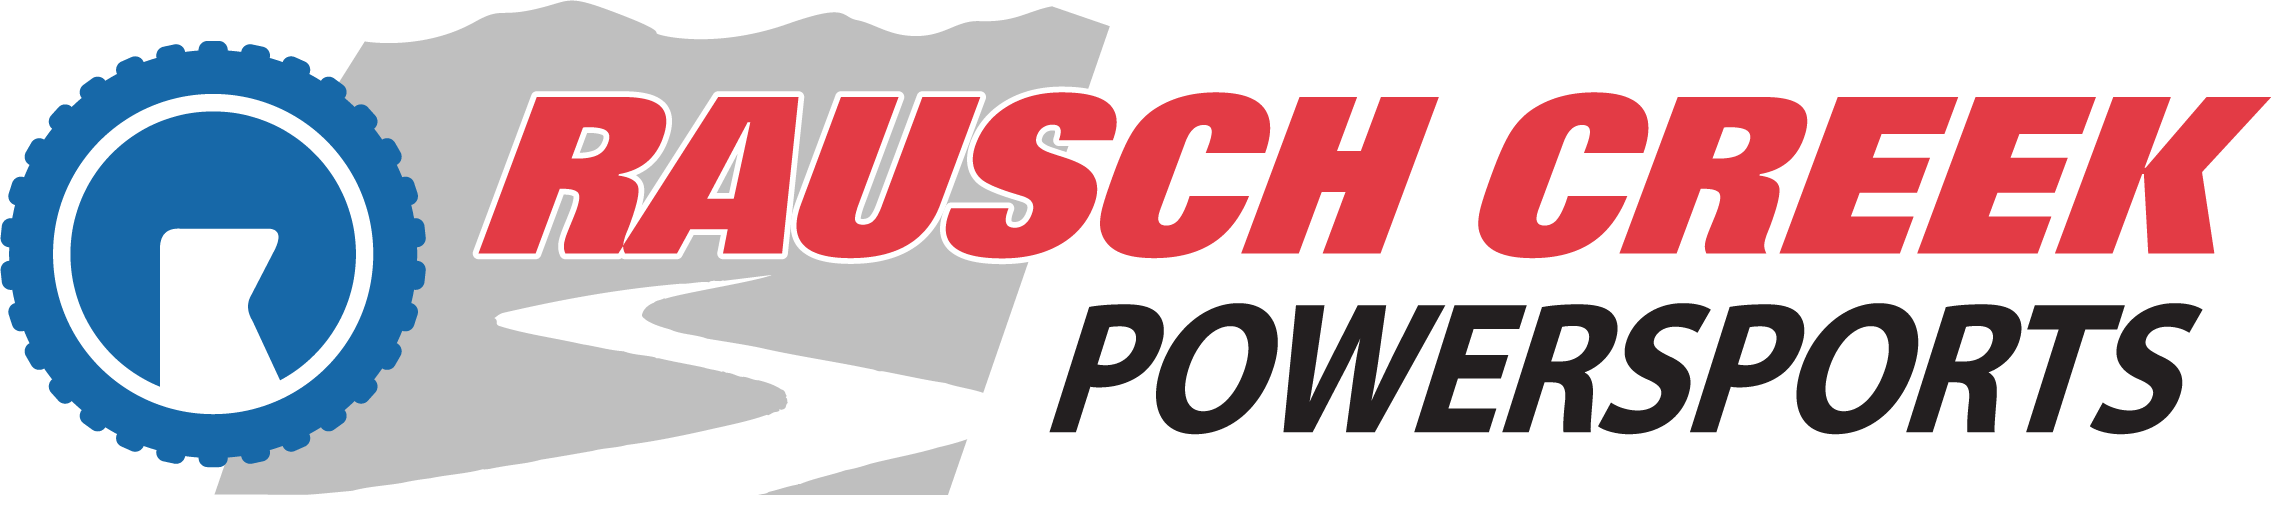 Rausch Creek Powersports